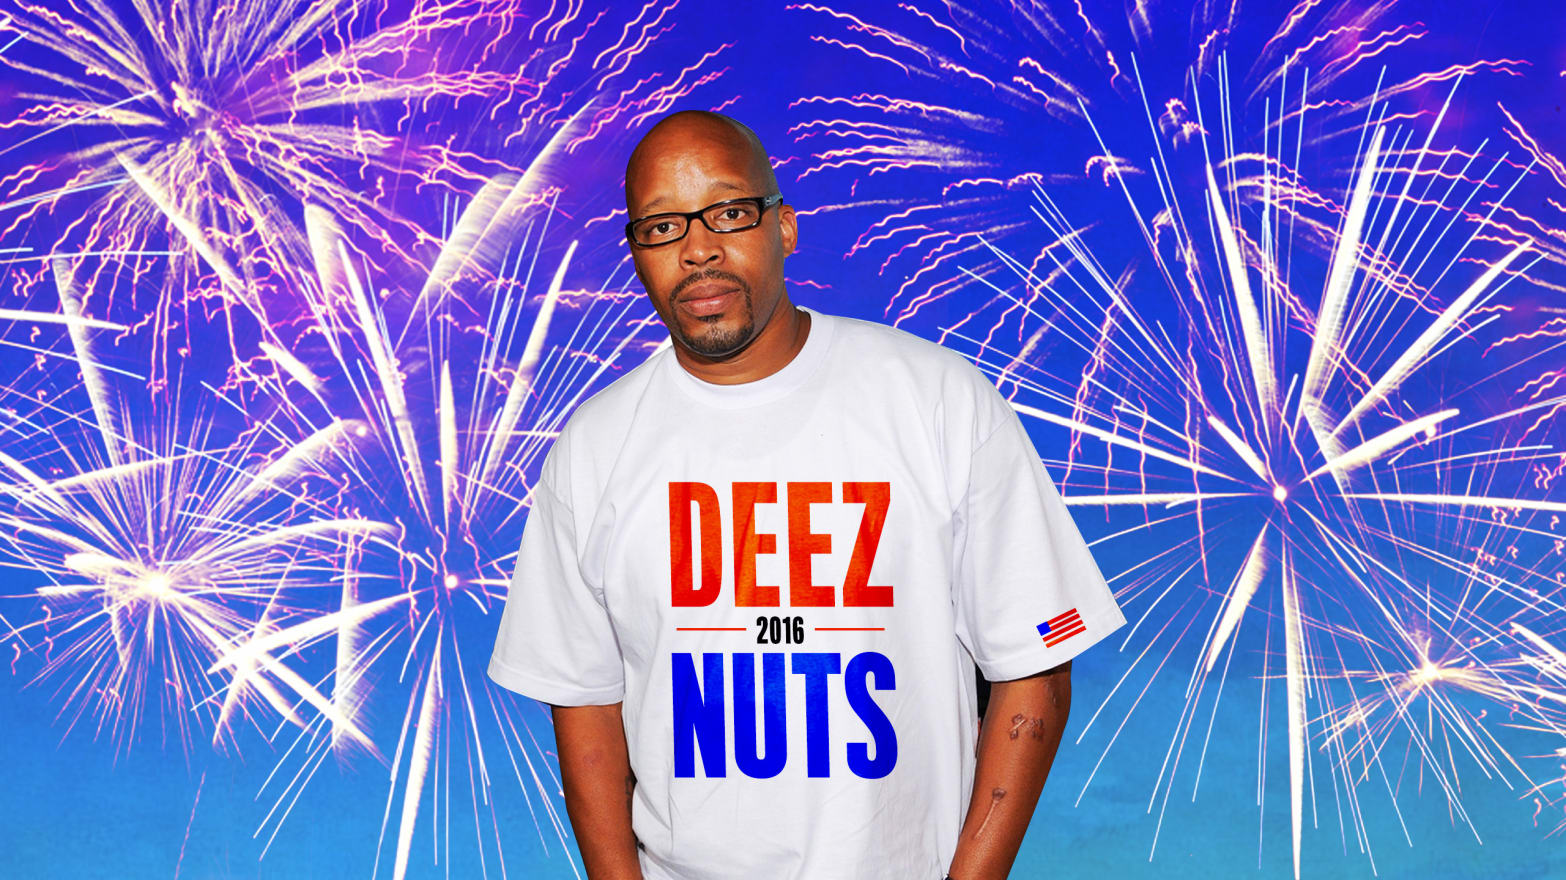 warren g endorses deez